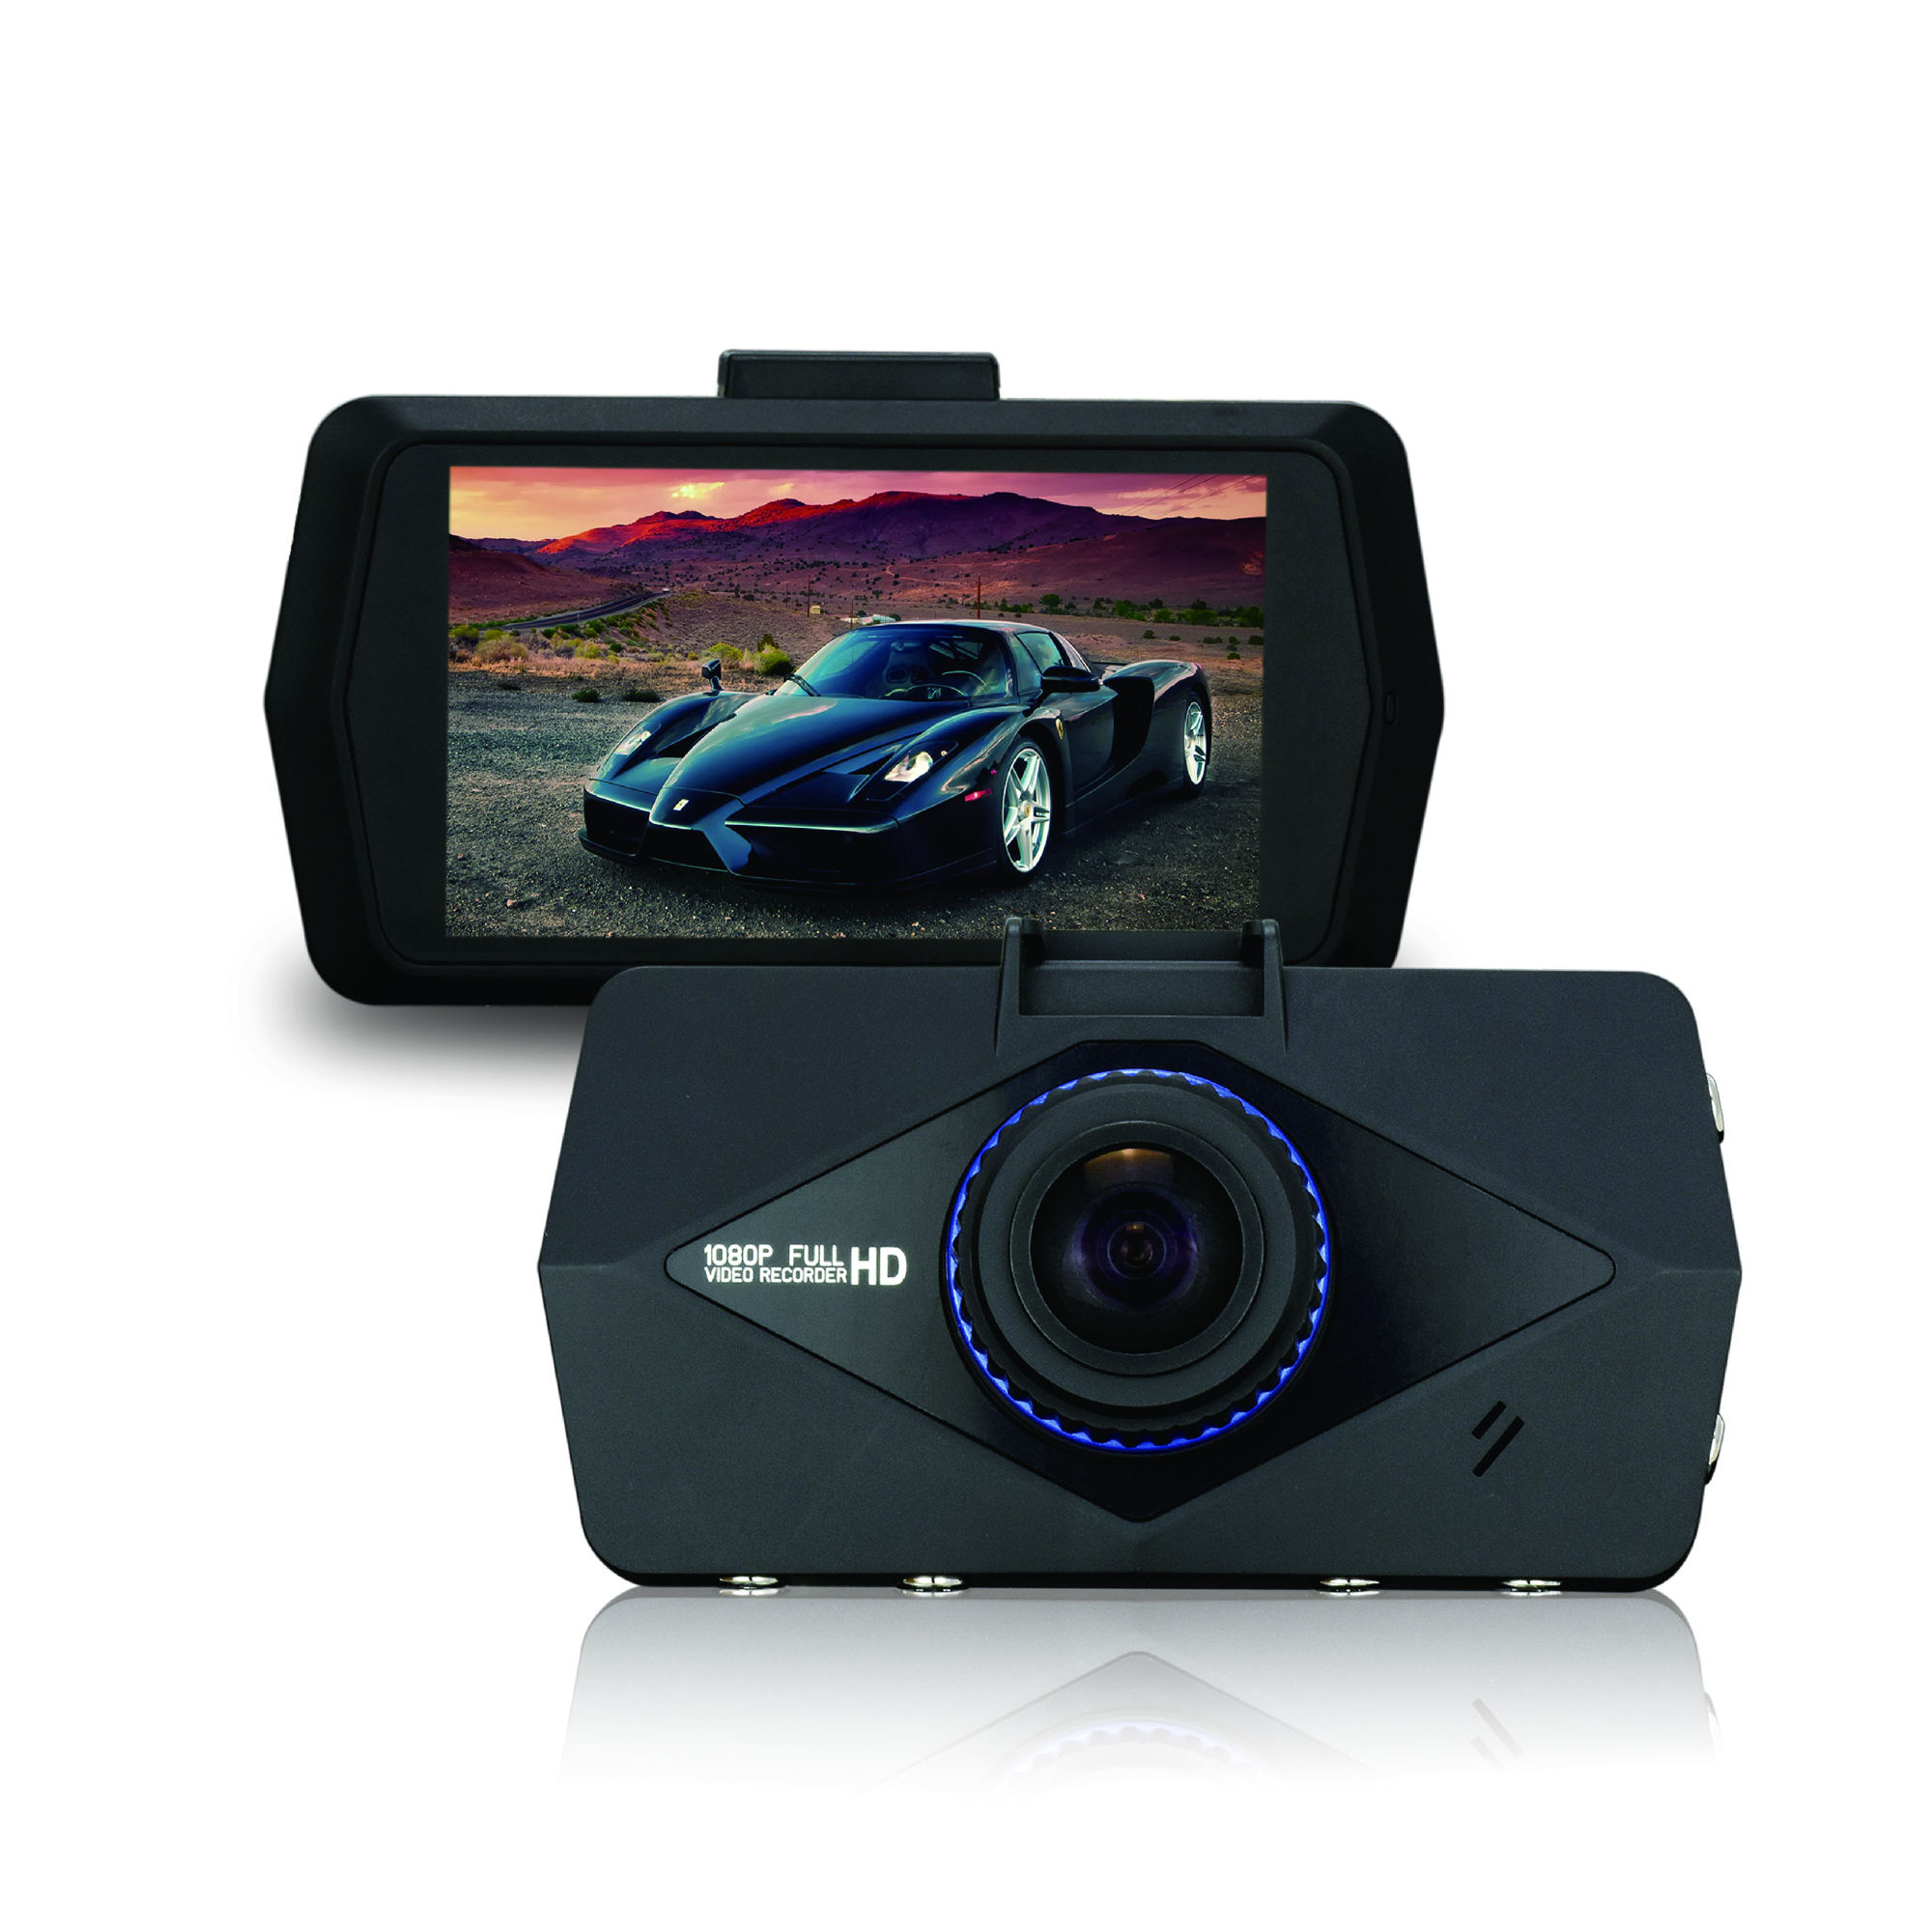 Best selling 2.7 inch FHD 1080p 30fps Car camera support G-sensor motion detection